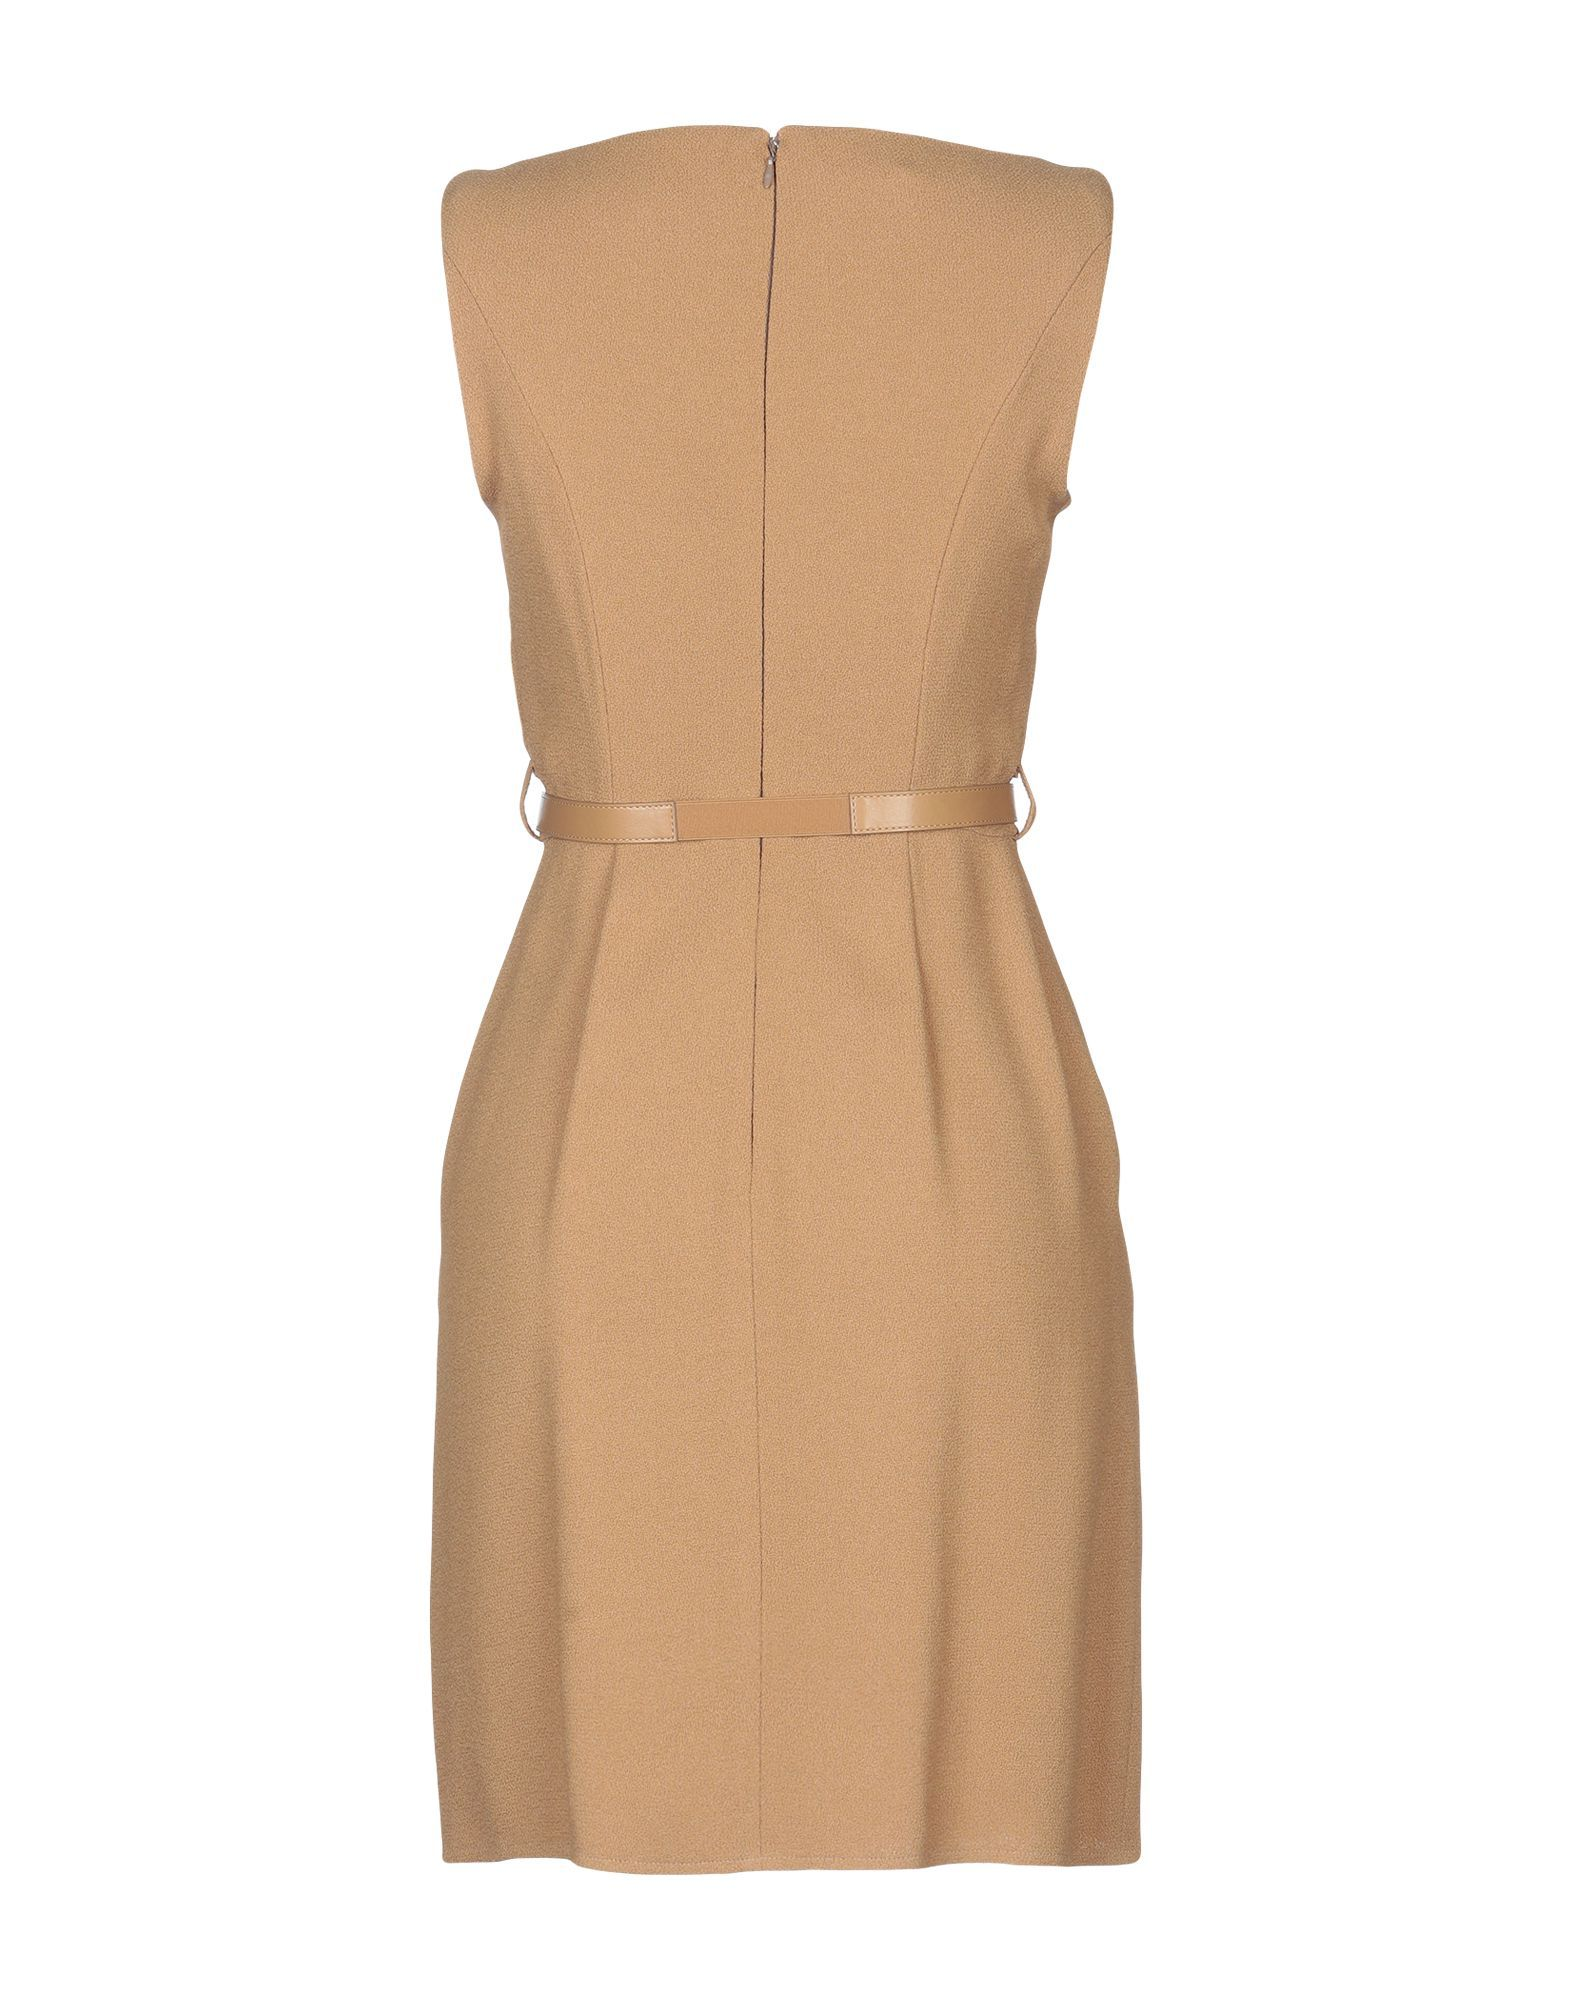 Elisabetta Franchi Camel Crepe Belted Dress